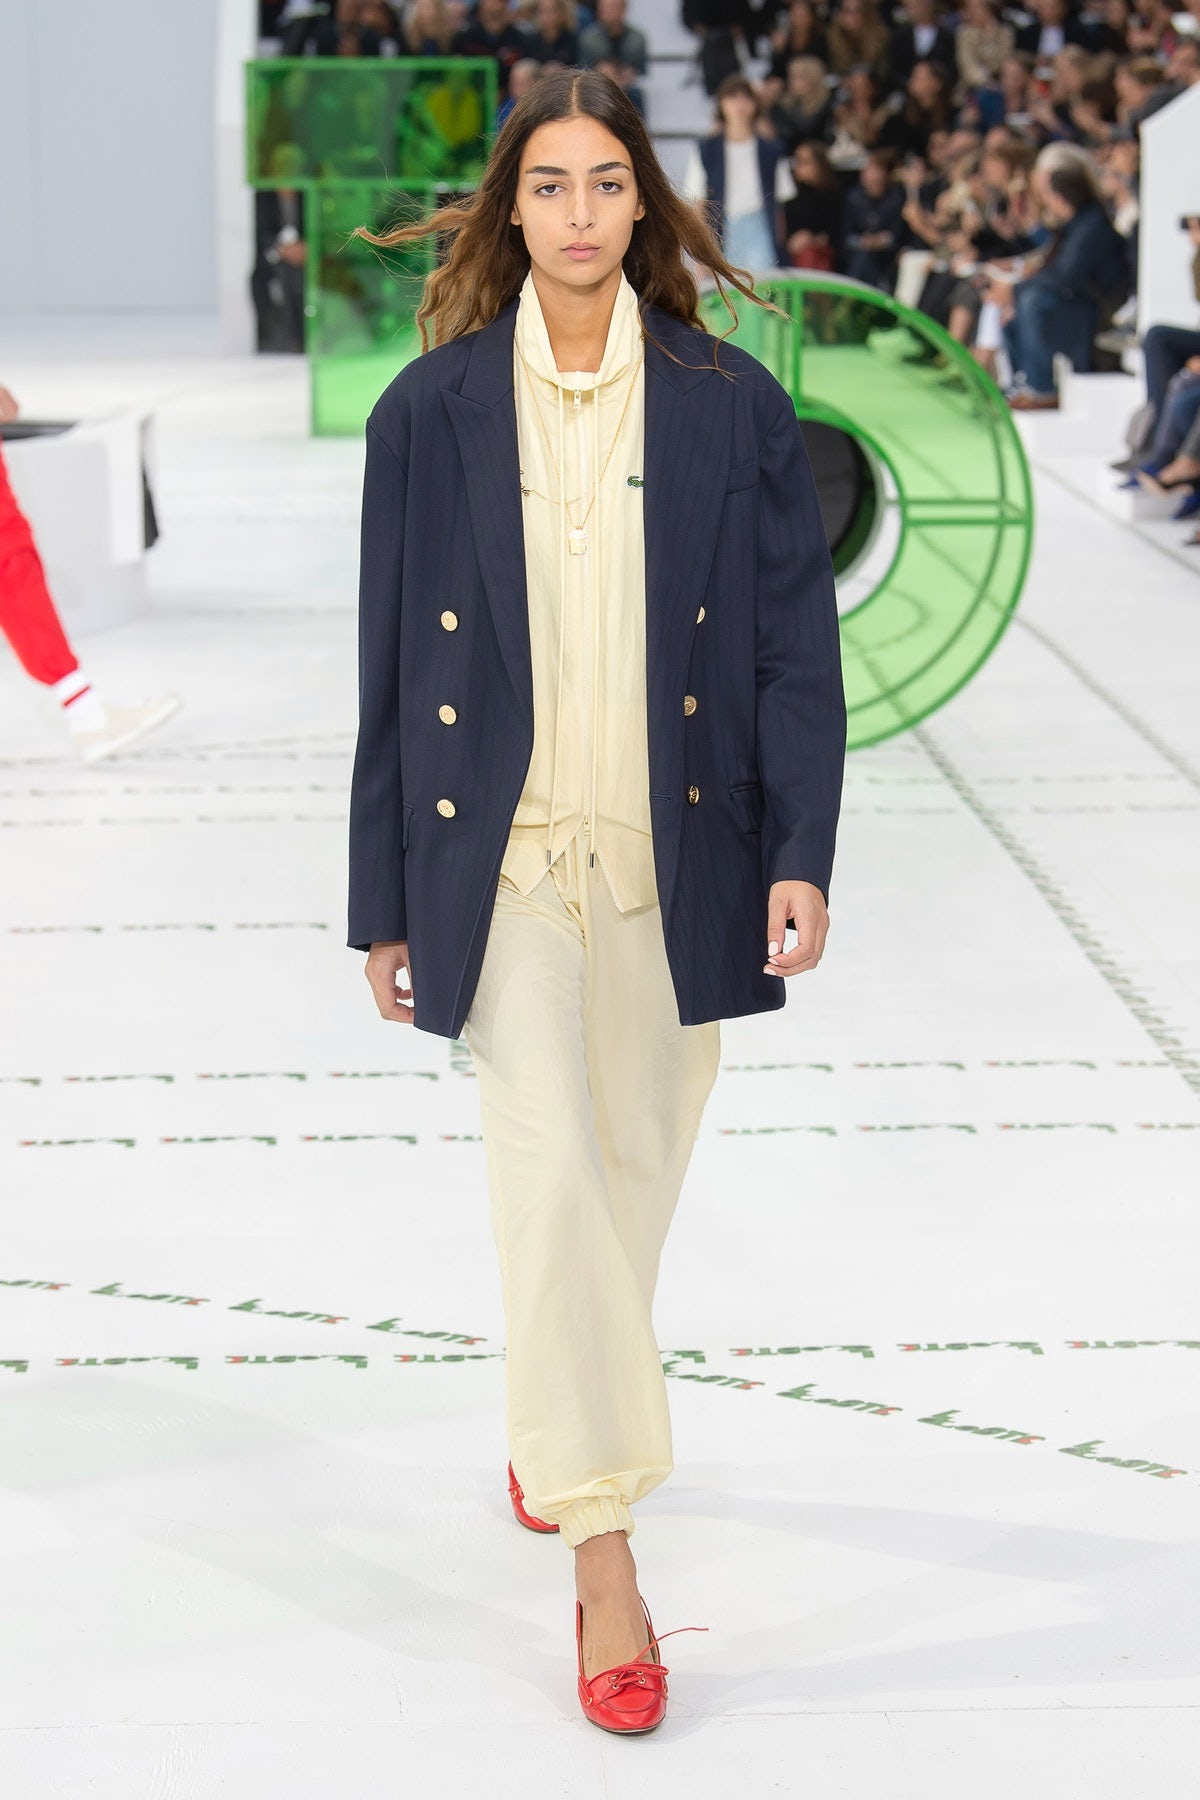 From Bourgeois to Street Style at Lacoste